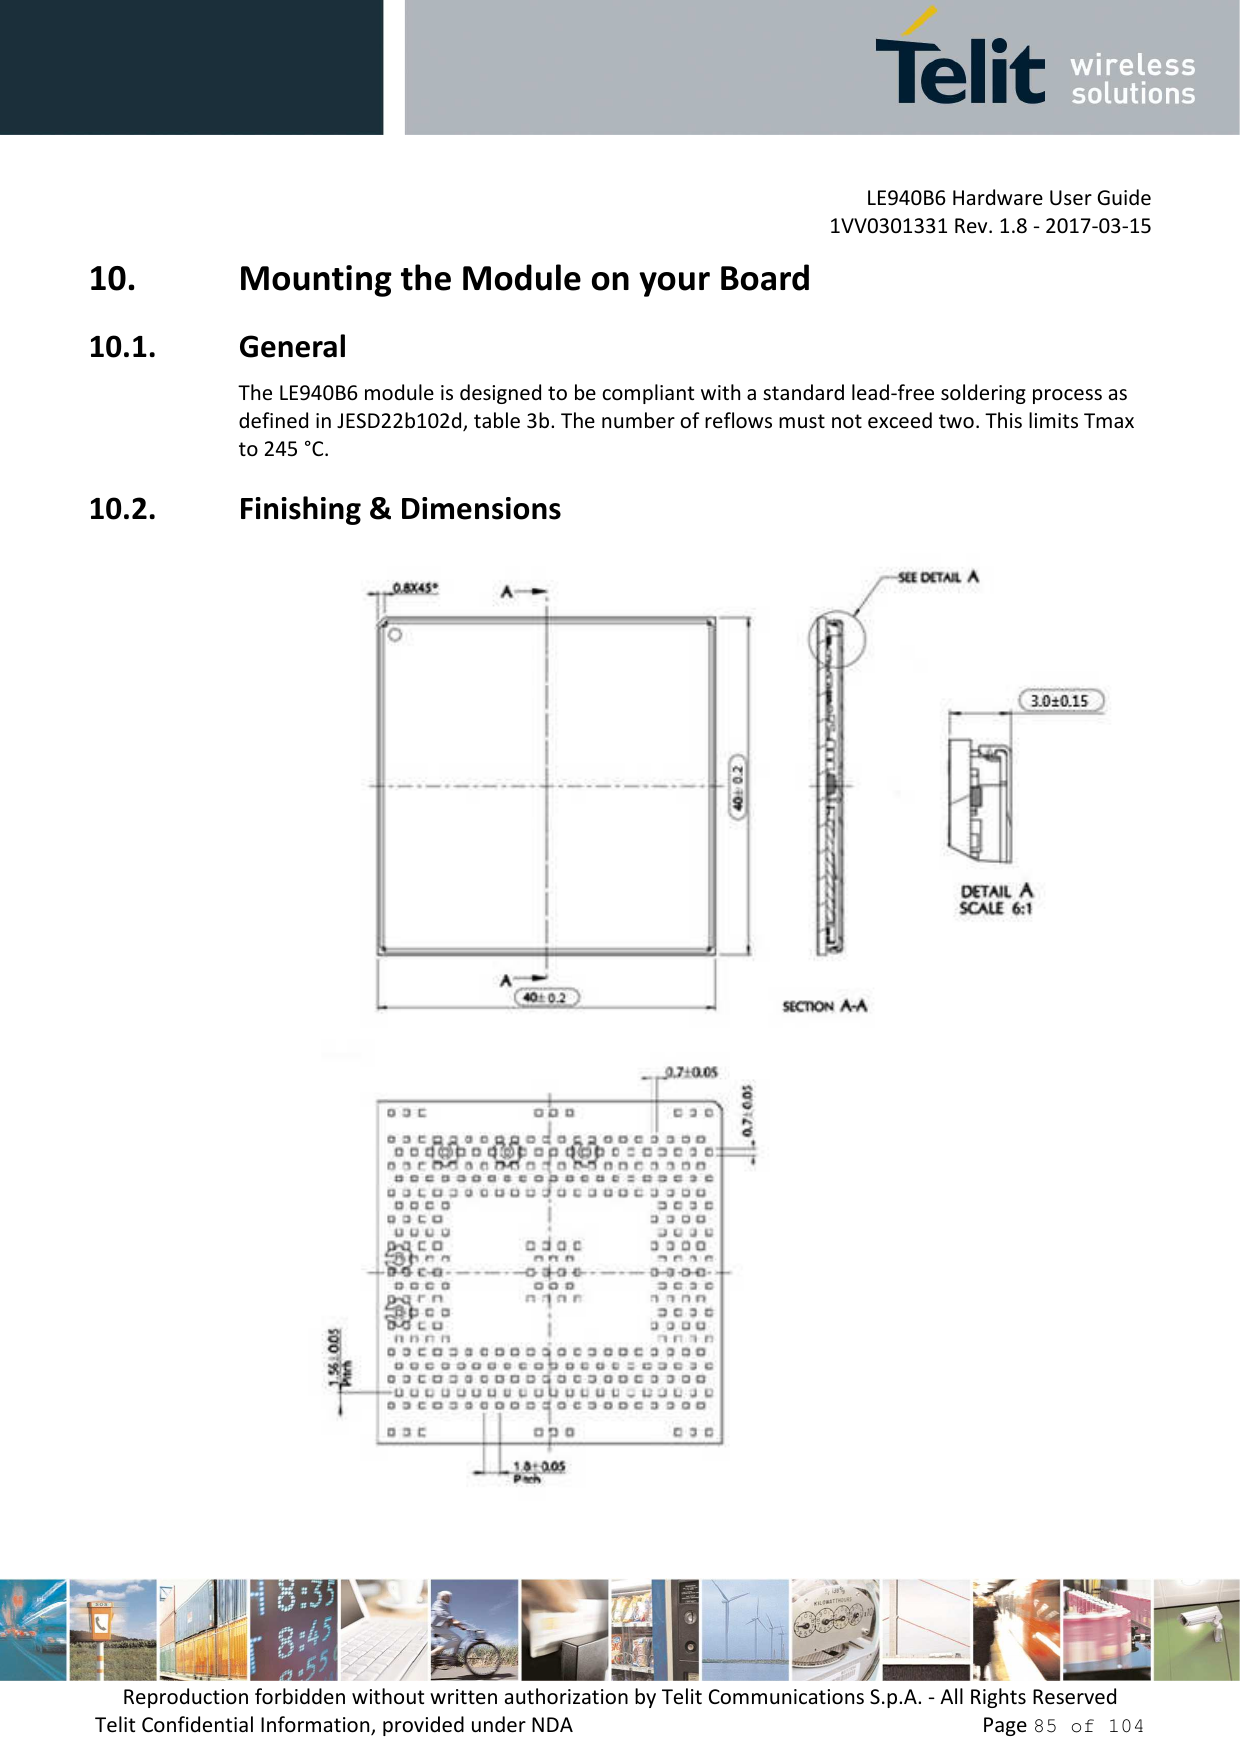 LE940B6 Hardware User Guide     1VV0301331 Rev. 1.8 - 2017-03-15 Reproduction forbidden without written authorization by Telit Communications S.p.A. - All Rights Reserved Telit Confidential Information, provided under NDA                 Page 85 of 104 10. Mounting the Module on your Board 10.1. General The LE940B6 module is designed to be compliant with a standard lead-free soldering process as defined in JESD22b102d, table 3b. The number of reflows must not exceed two. This limits Tmax to 245 °C. 10.2. Finishing & Dimensions